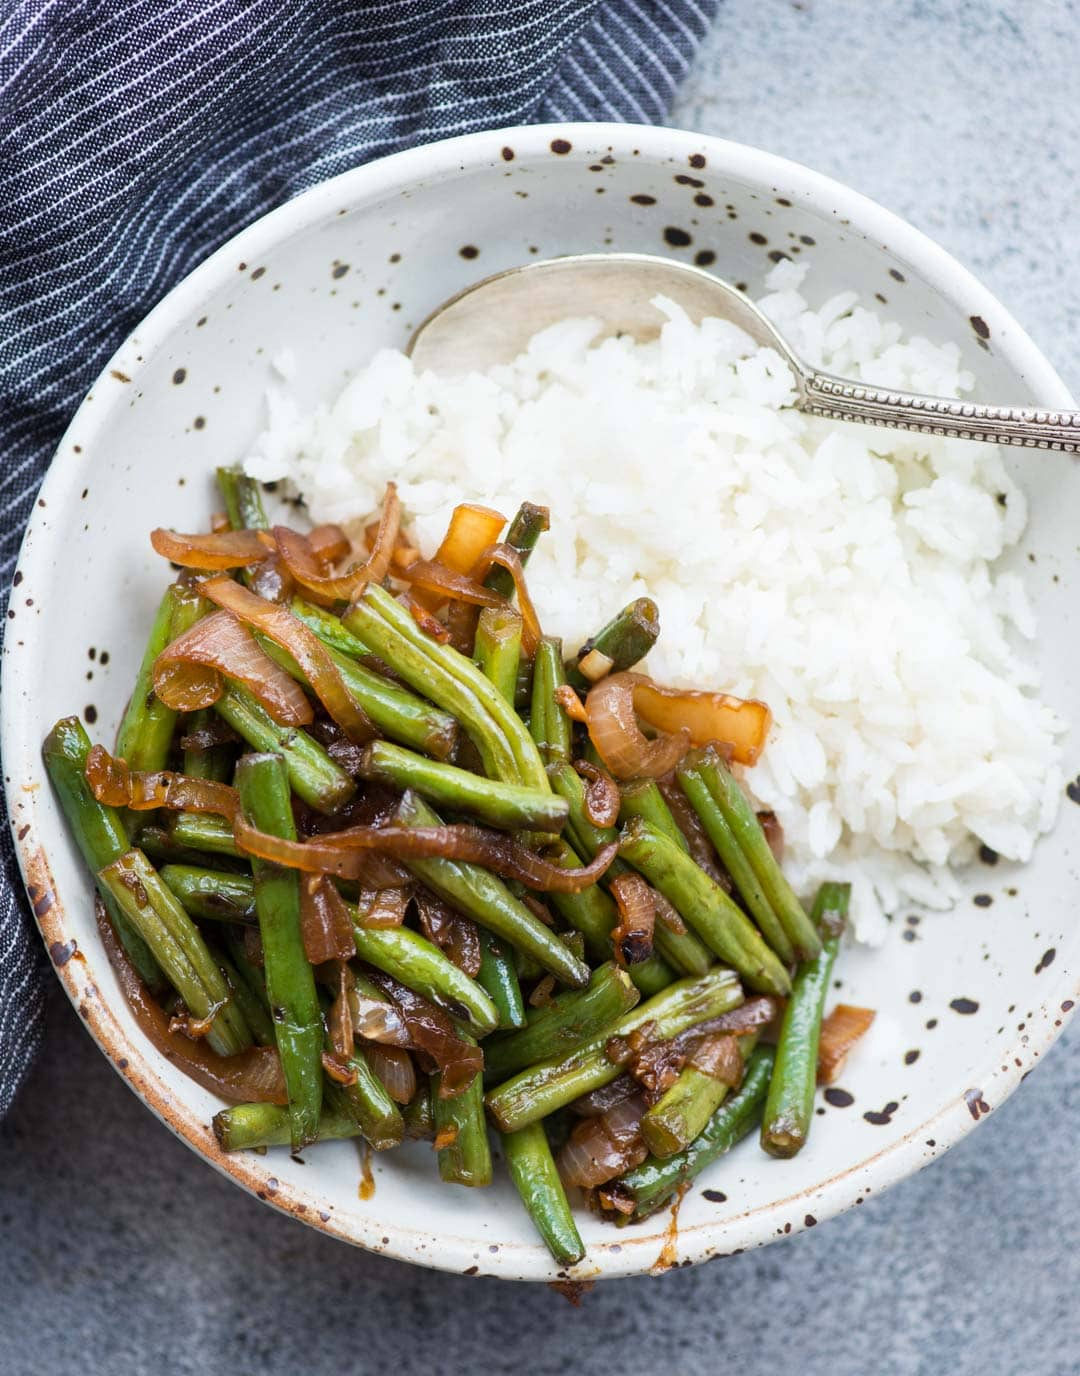 Asian Sauteed Green Beans with caramelized onion, garlic and a dash of soy sauce is an easy and versatile side dish. It takes only 20 minutes to make,the beans turn out tender and crispy.